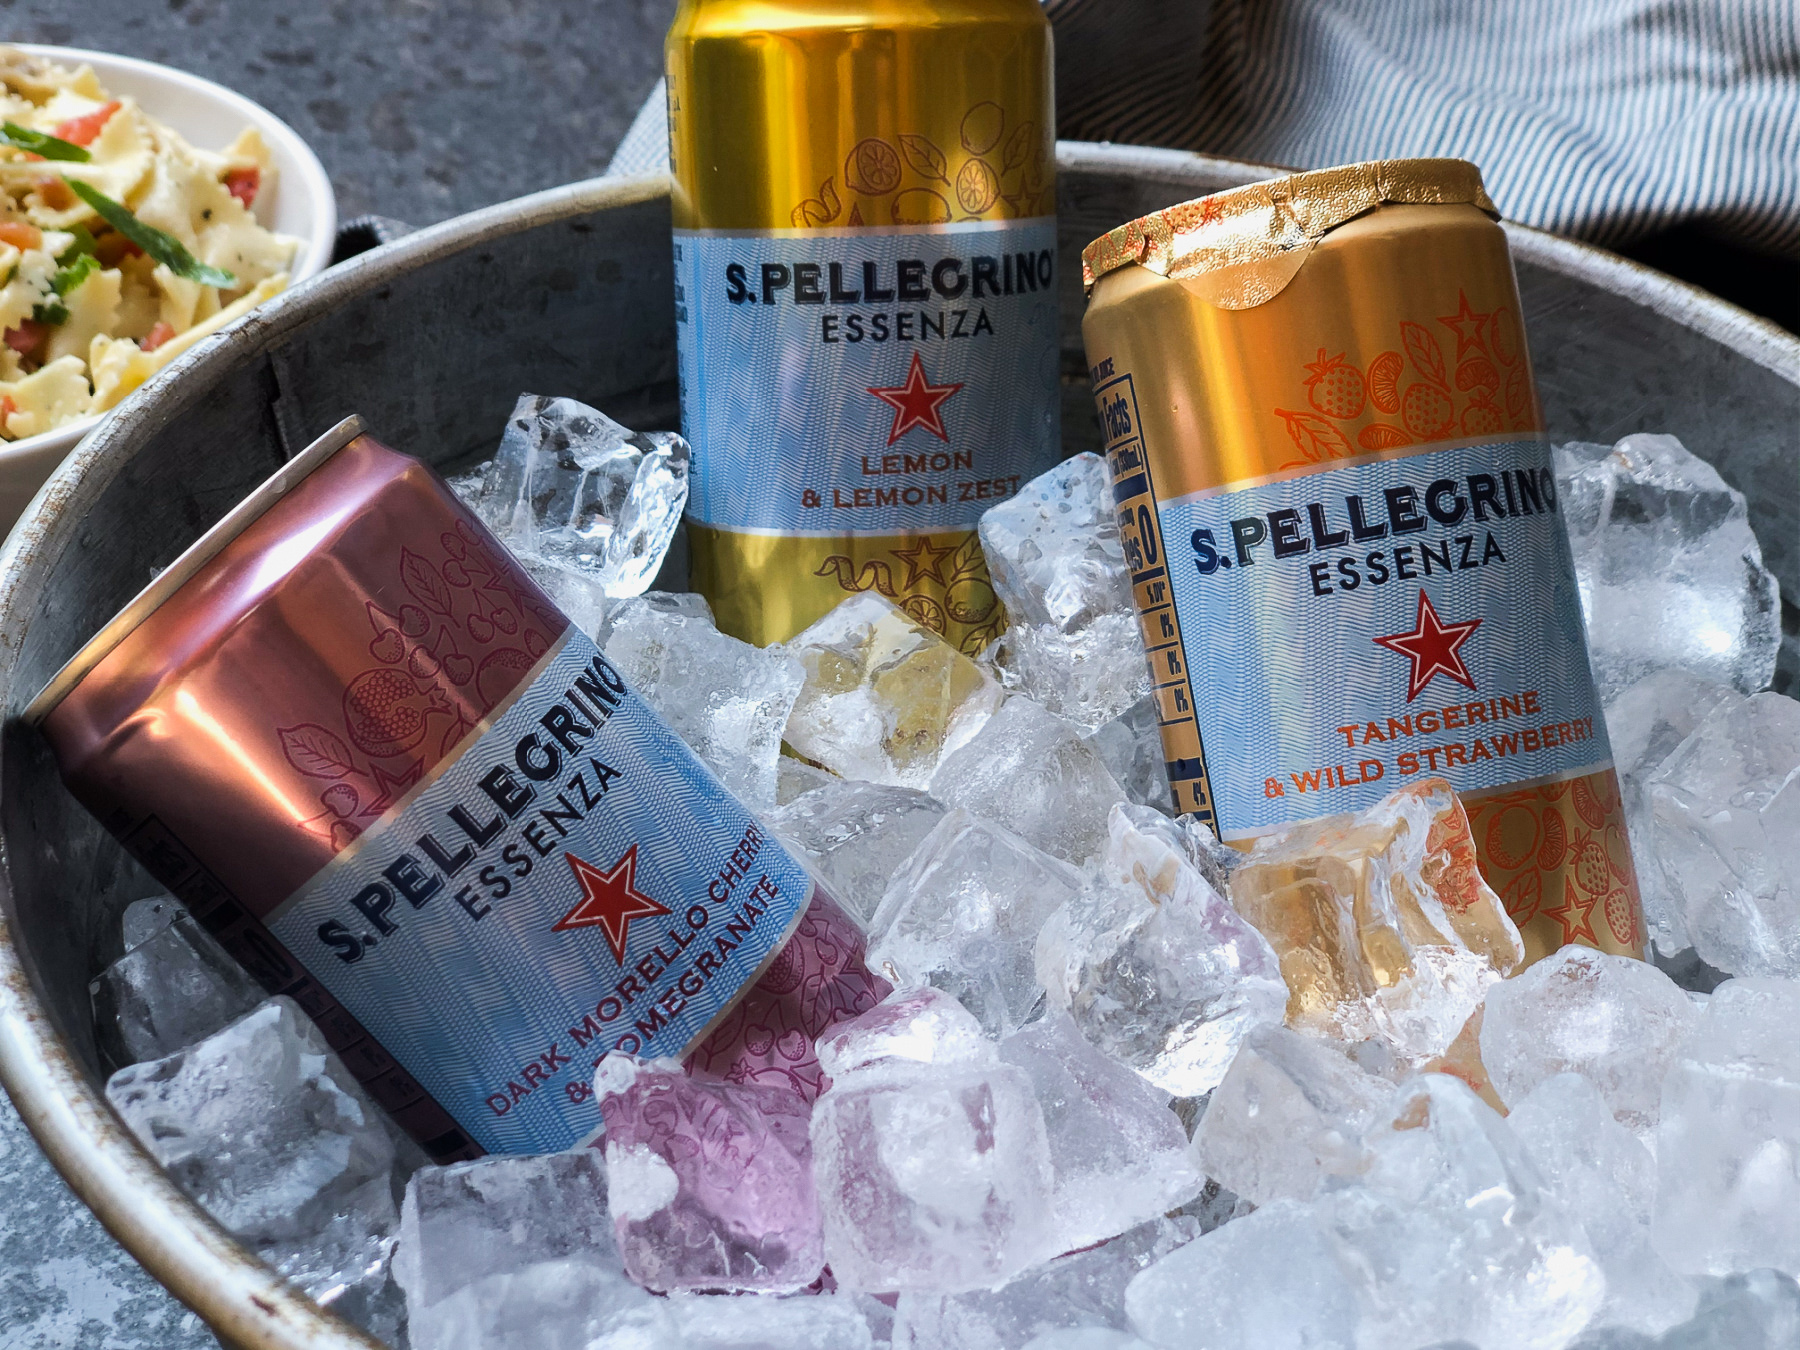 Add A Twist Of Flavor To Any Occasion With S.Pellegrino Essenza on I Heart Publix